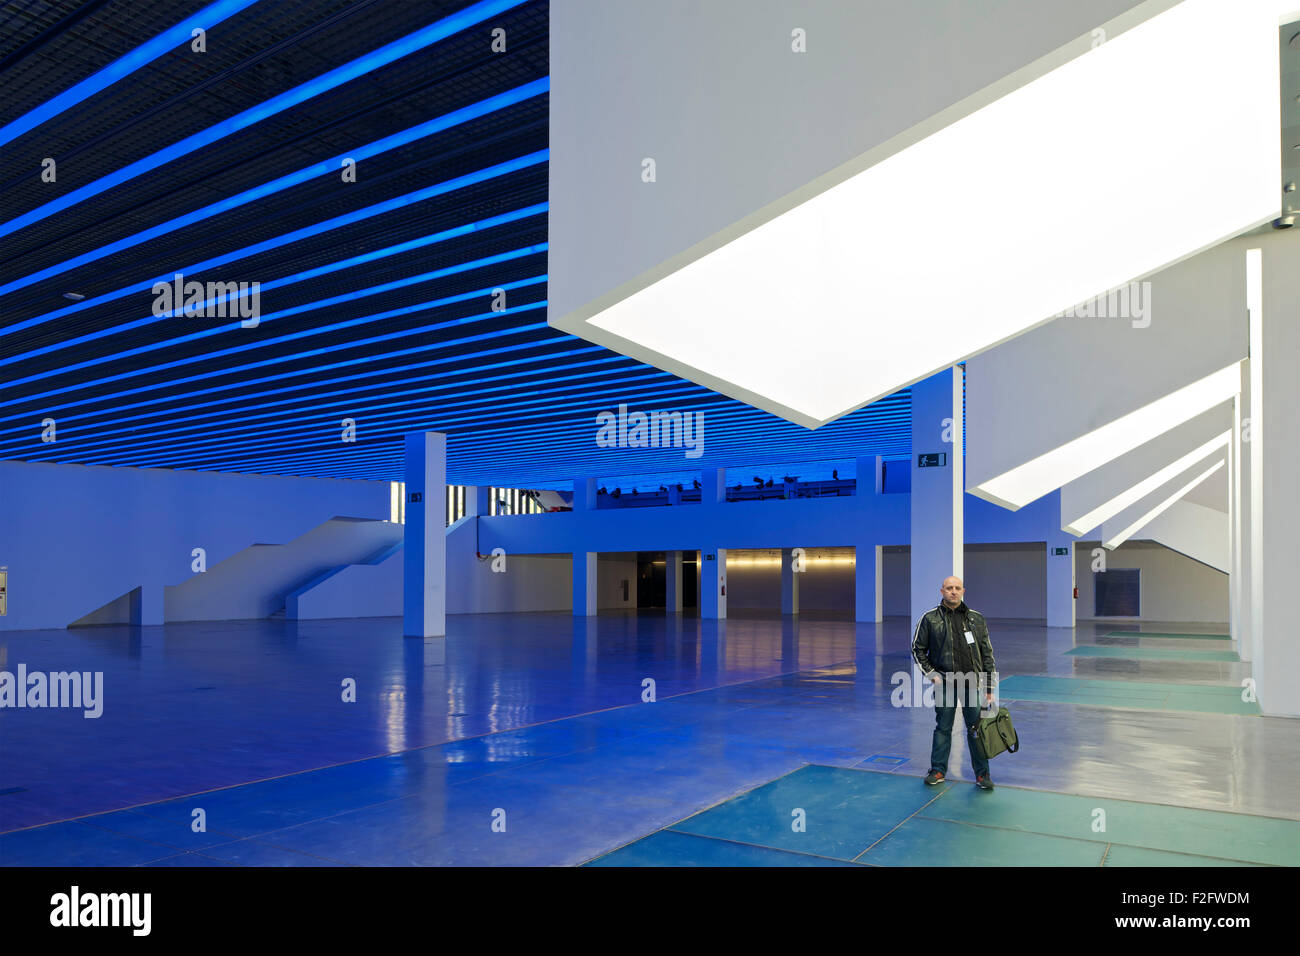 Skylight Columns And Ground Floor Gallery In Blue Light With Man Standing.  Museu Del Disseny De Barcelona, Barcelona, Spain. Arc